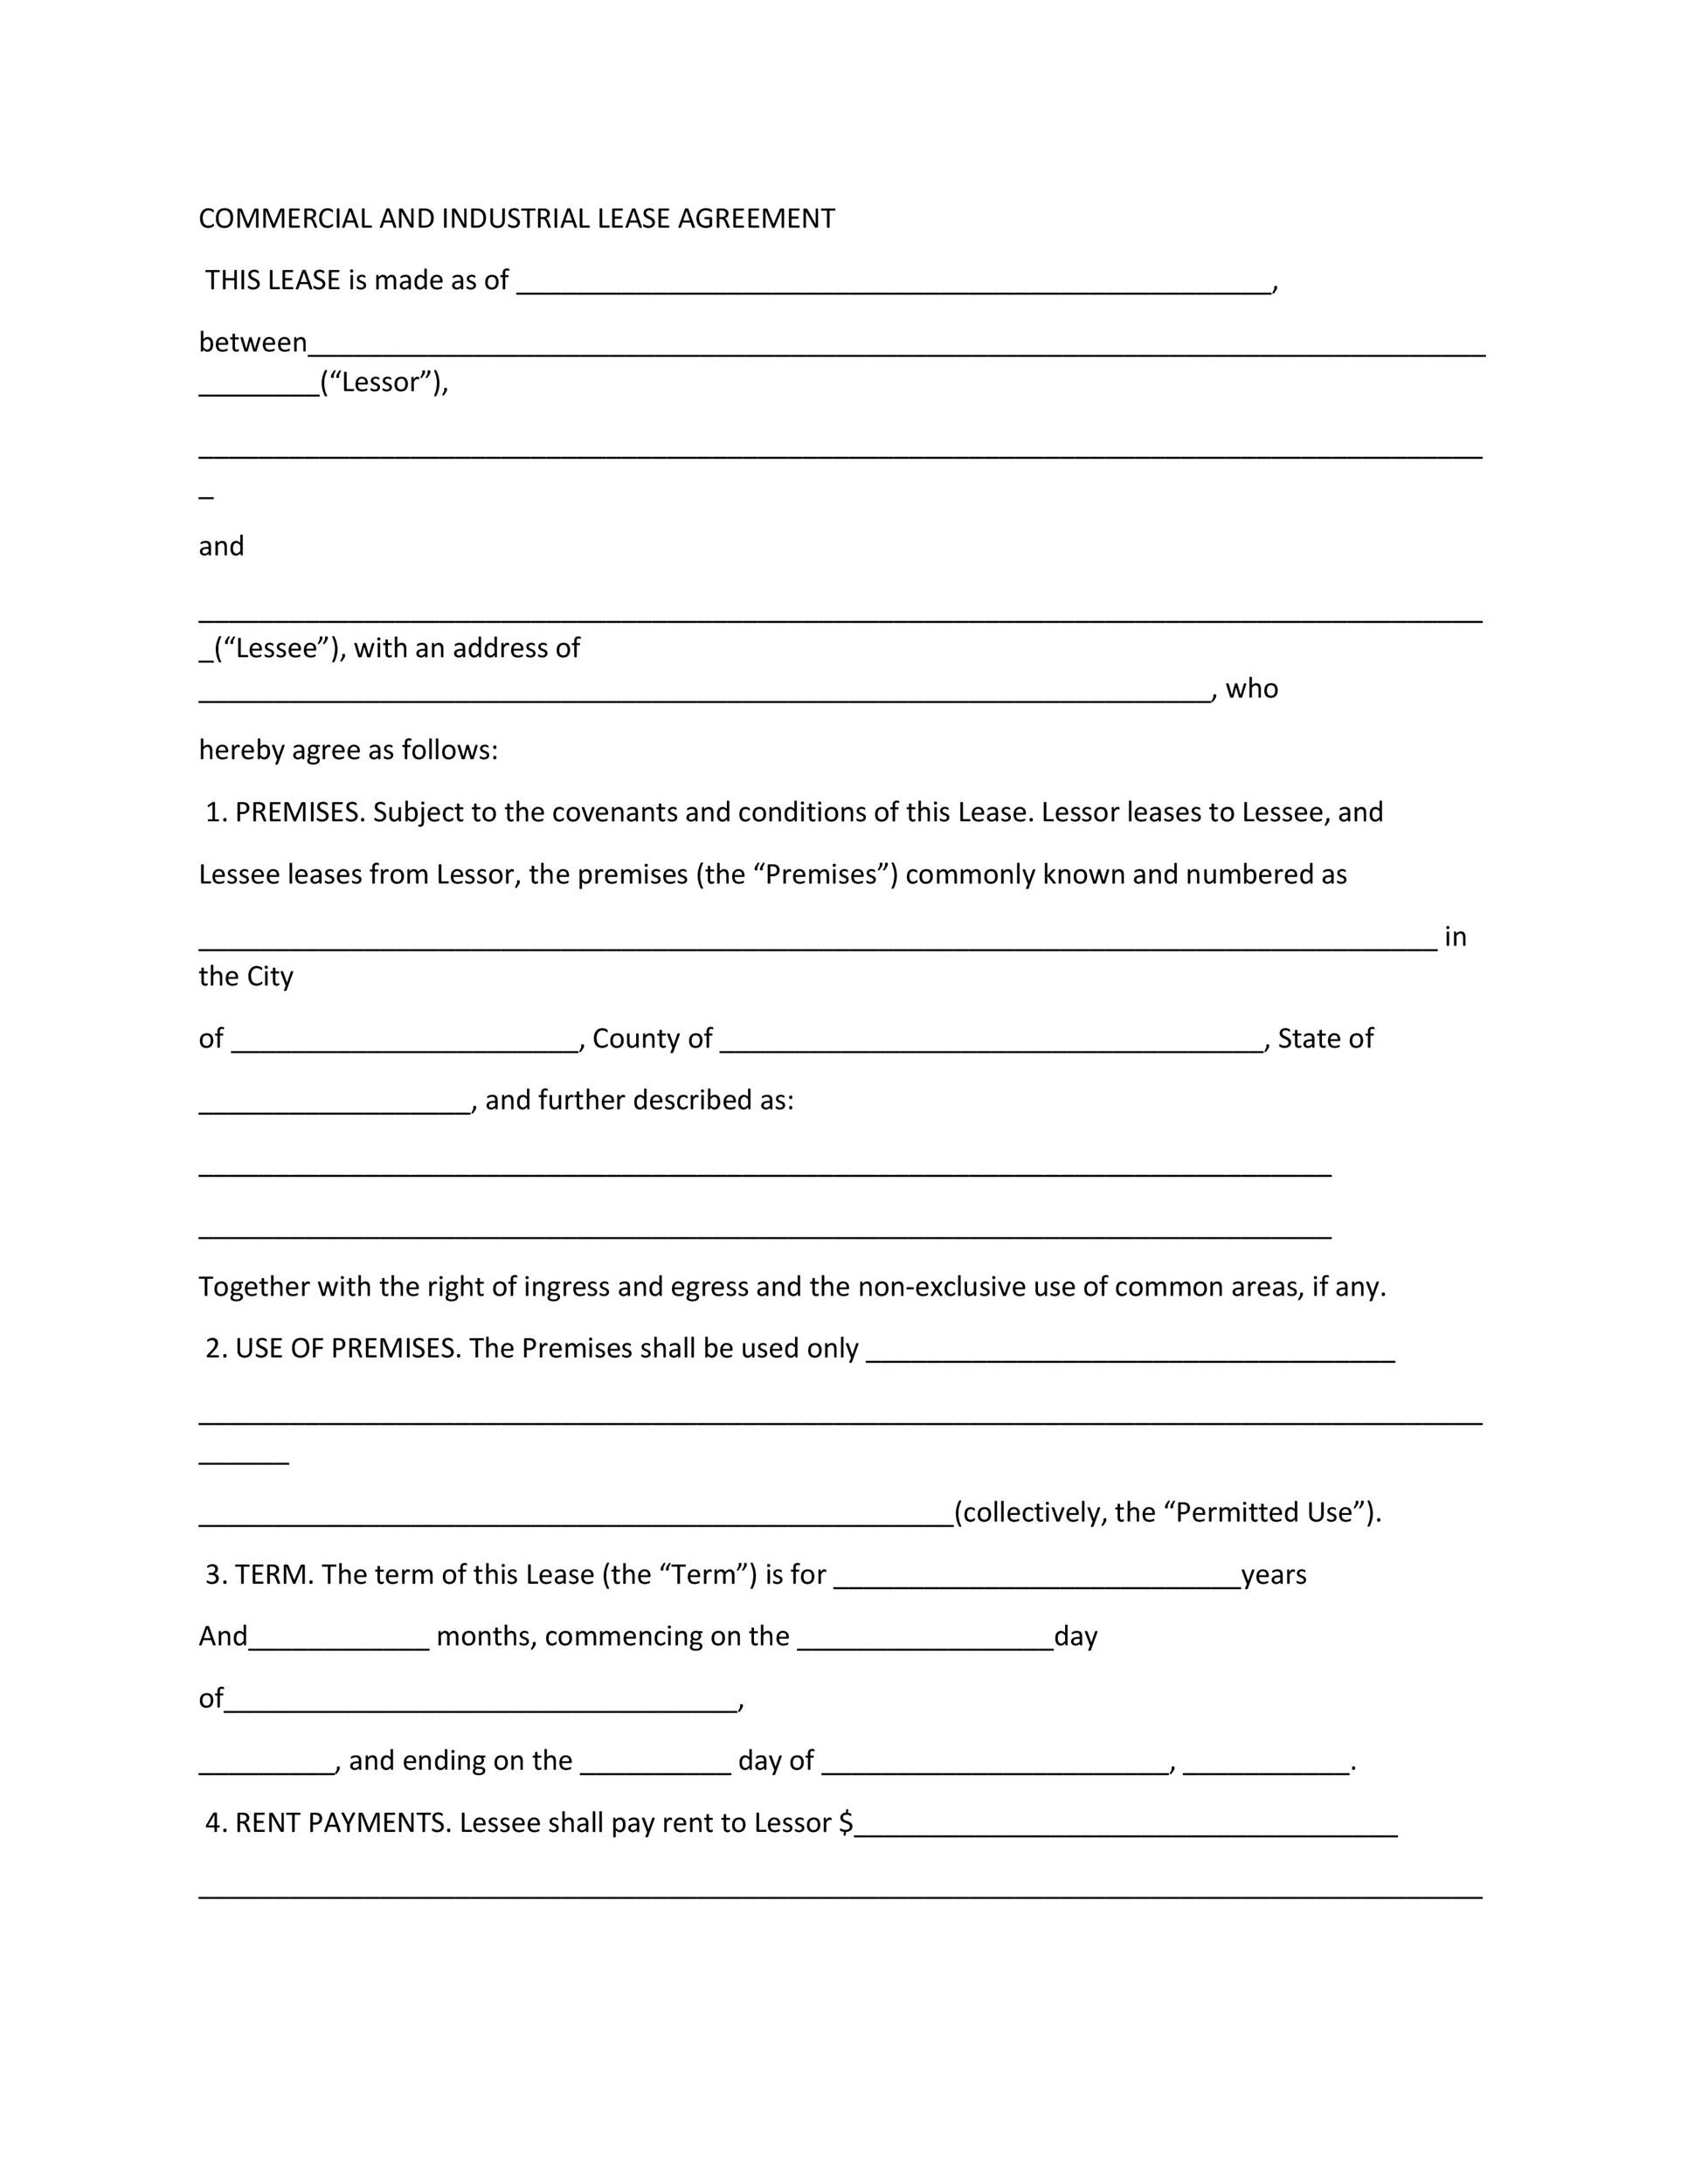 Free Commercial Lease Agreement Template 26